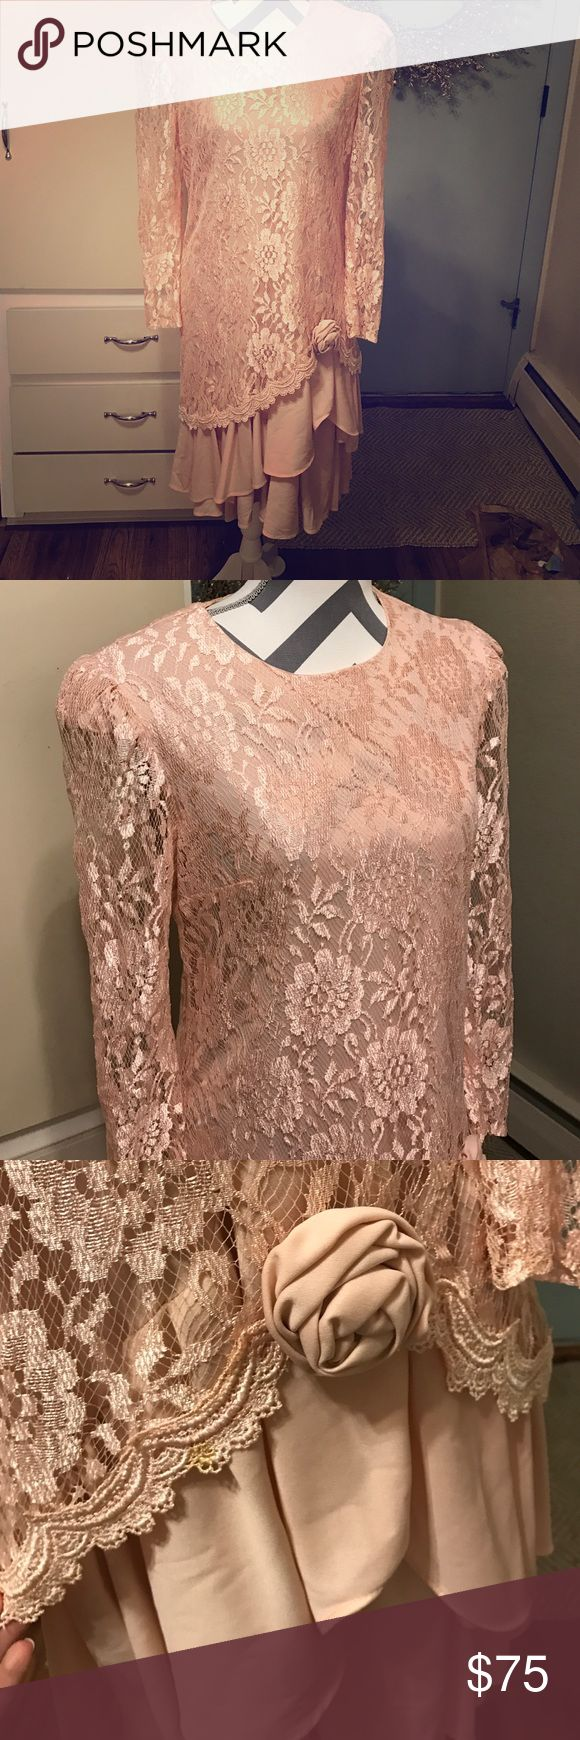 Vintage David Rose dress Beautiful lace mauve pink dress. No size tag. But it's a bit loose on me and I wear a small. Would fit a size 6 -8  or medium. The dress has some stretch in it too. Small stain in dress pictured above! This dress is sure to make a statement gorgeous! david rose Dresses